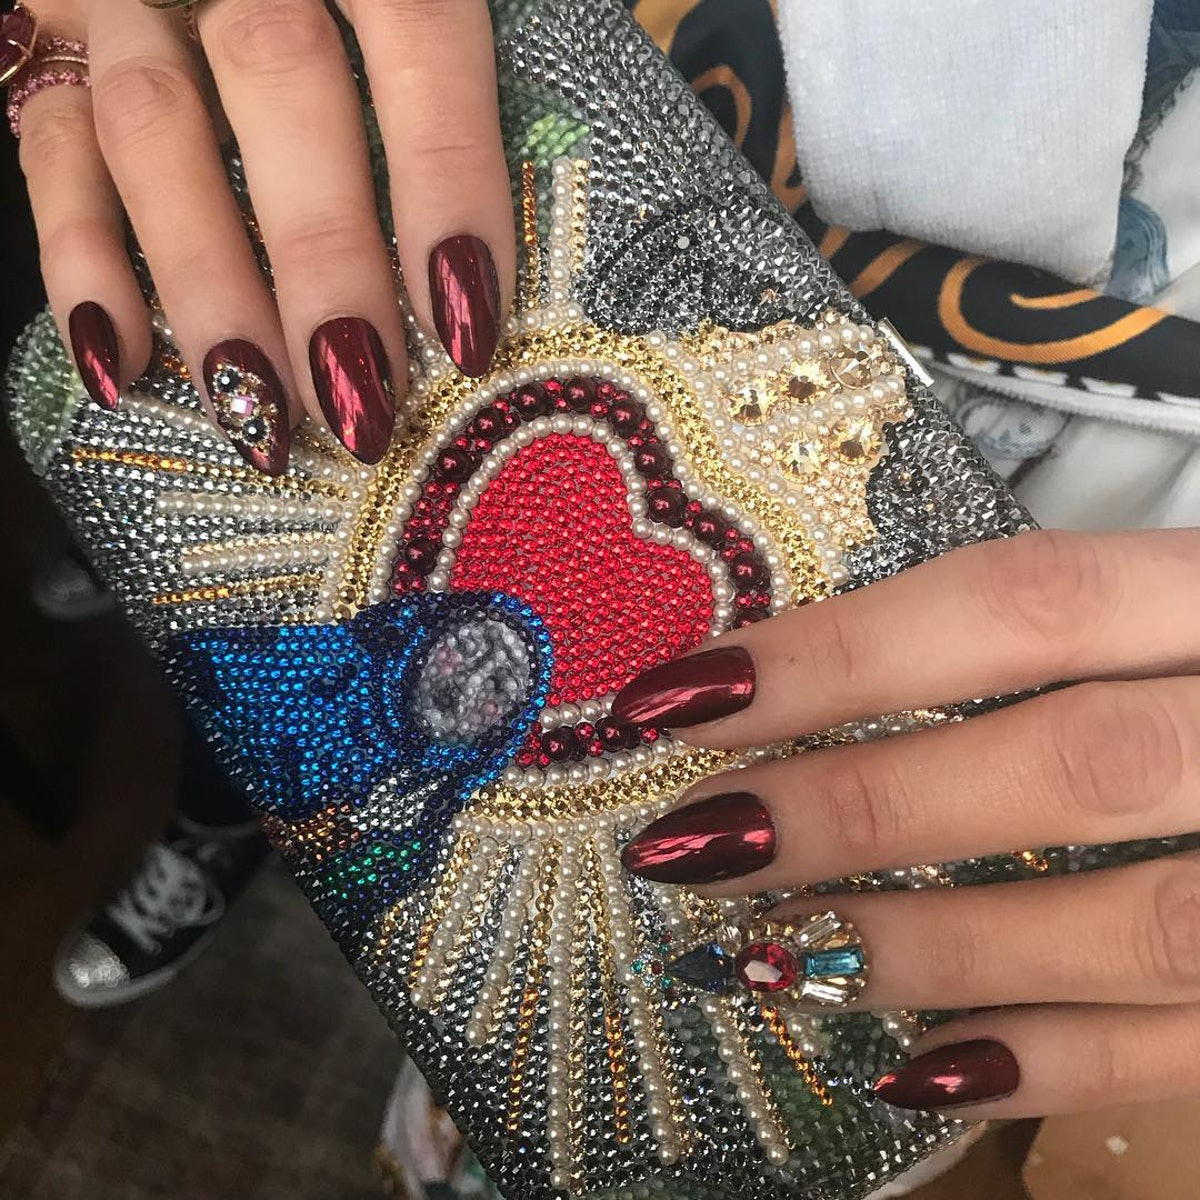 In 2018, Blake Lively turned heads at the Met Gala with her regal gown and stained glass-inspired nails.